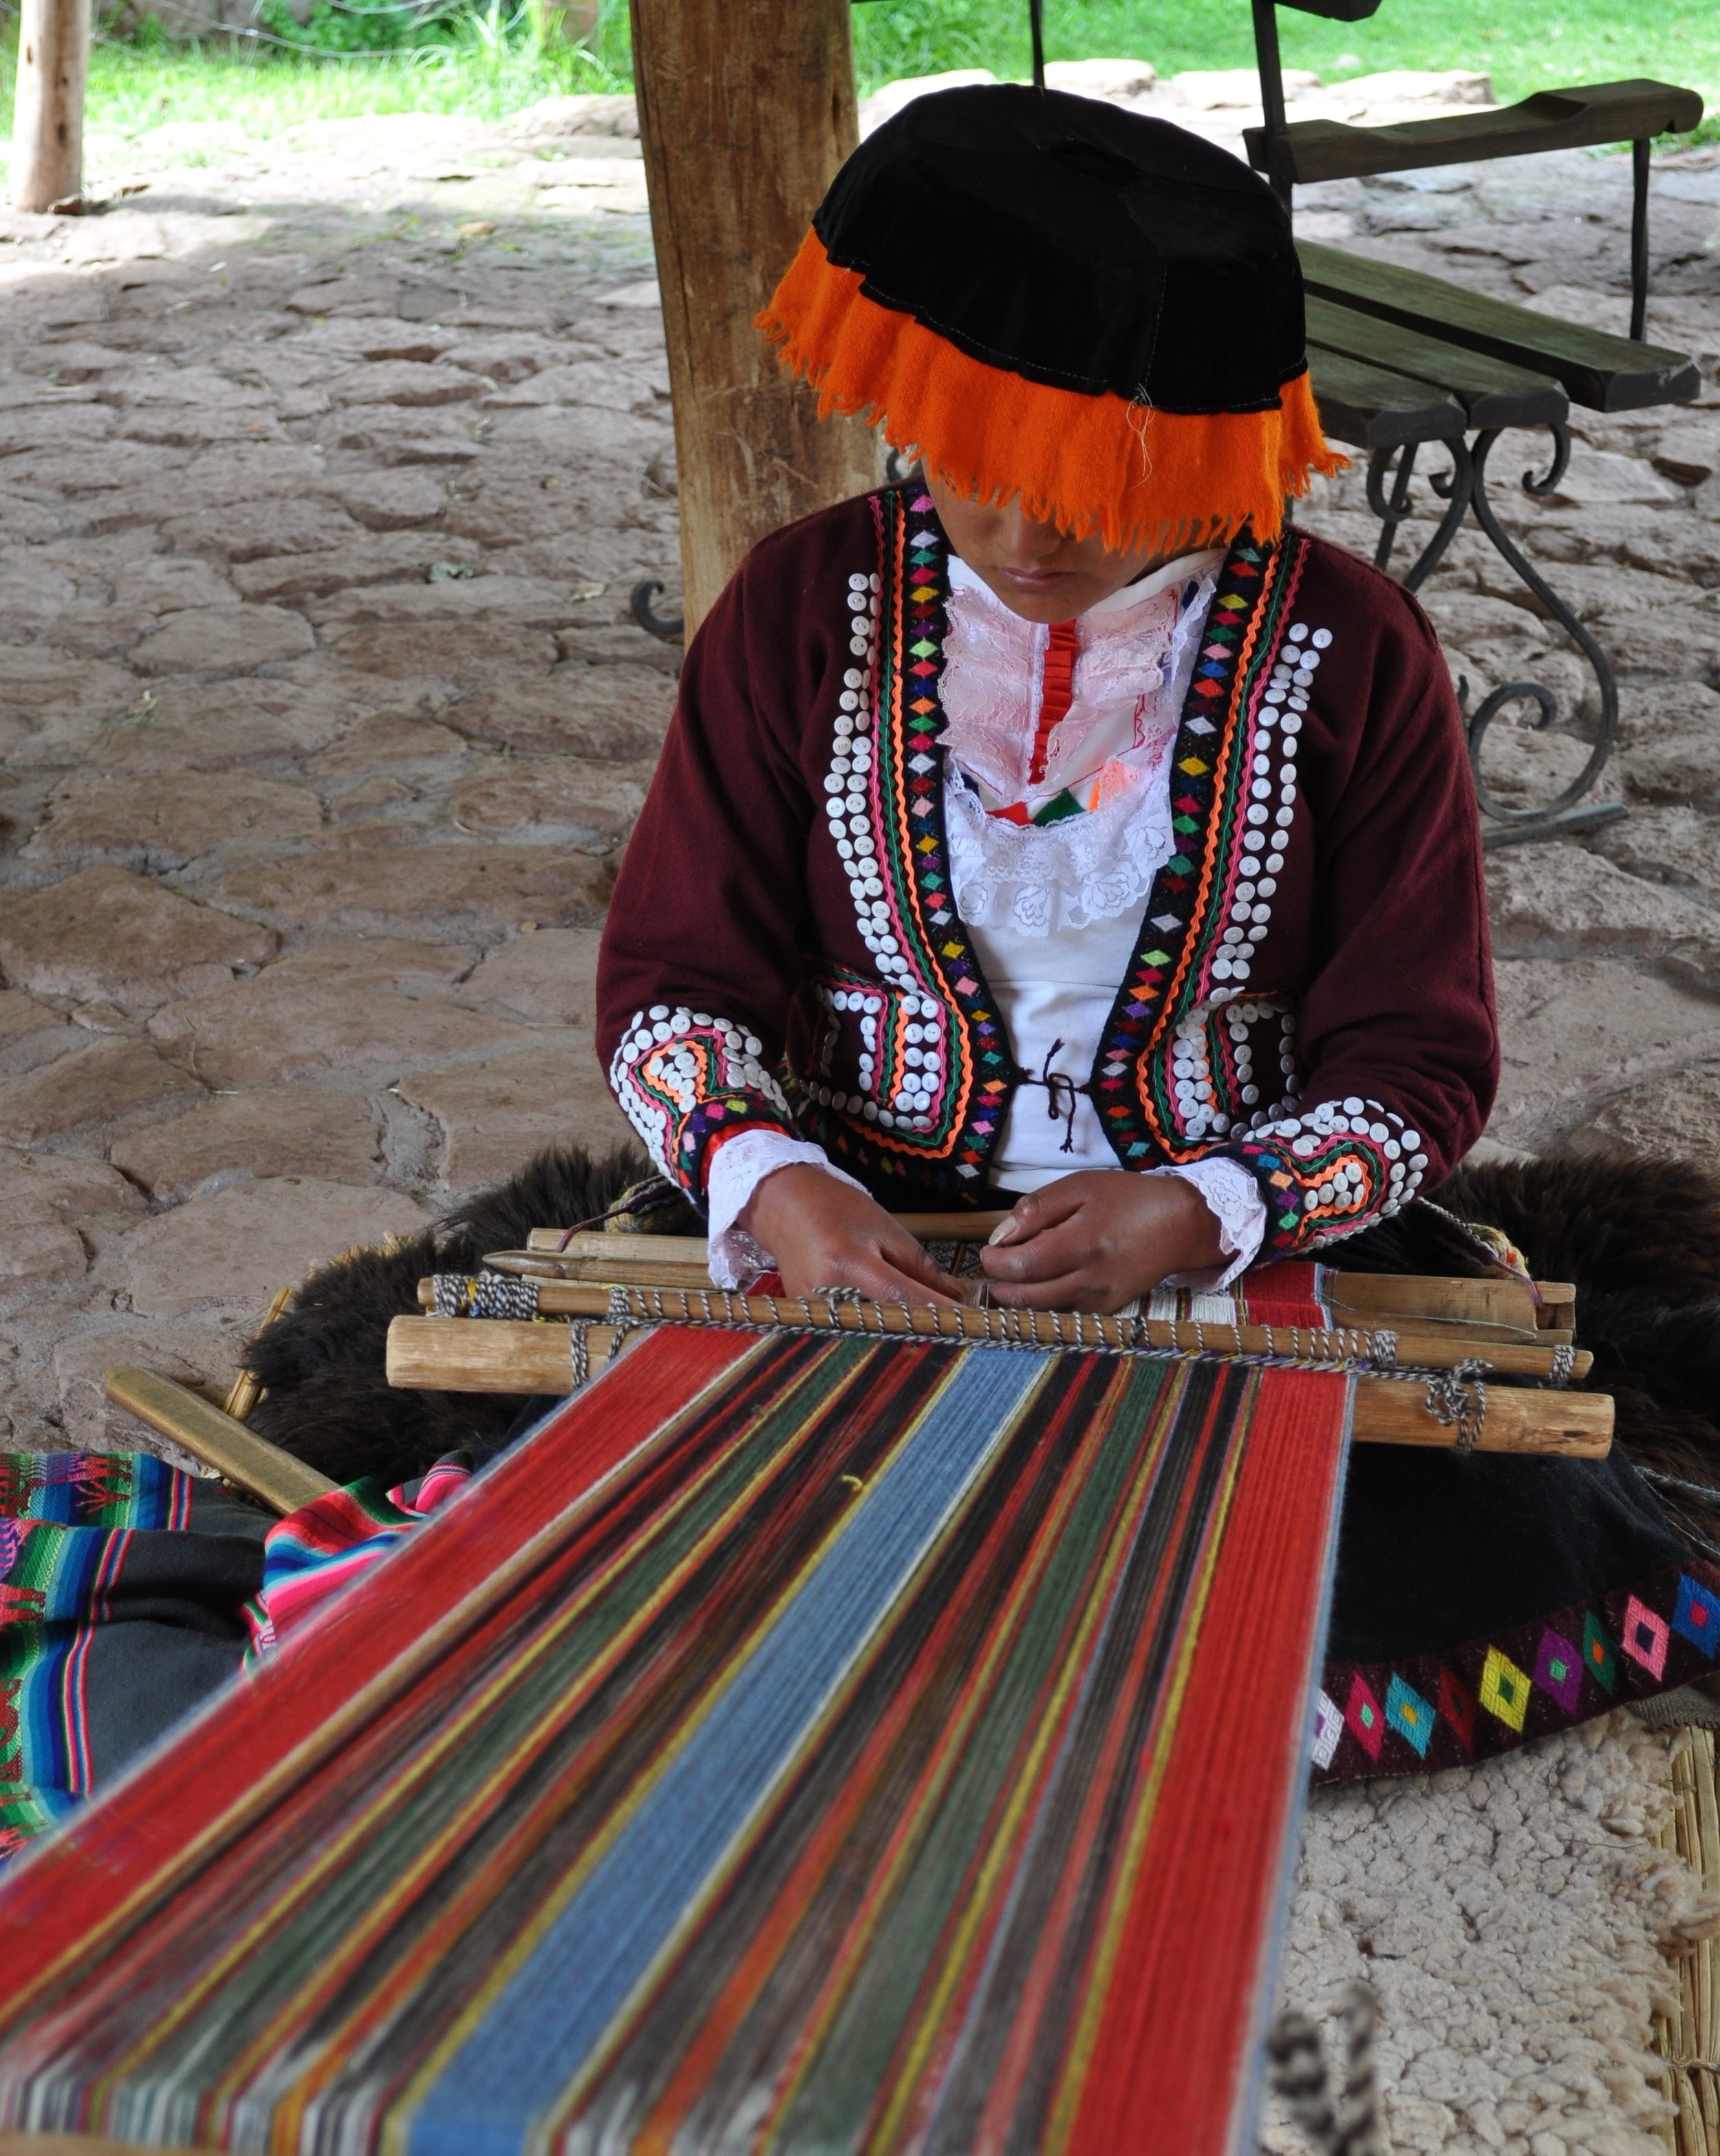 There are about thirty-five tones of colored wool from the llamas. Photo: Pamy Rojas